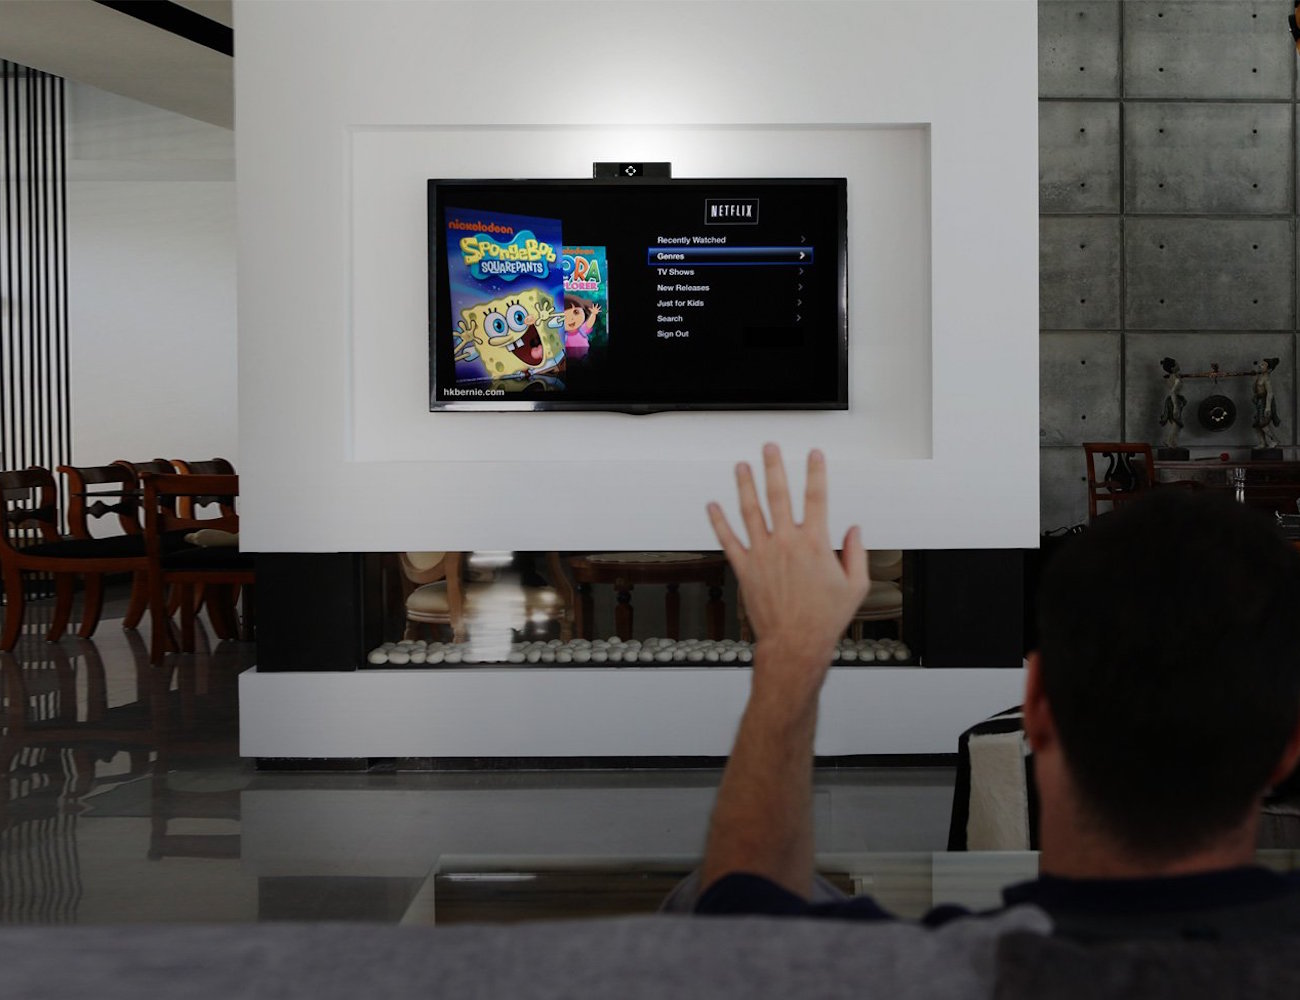 singlecue-gesture-control-for-your-home-entertainment-devices-02